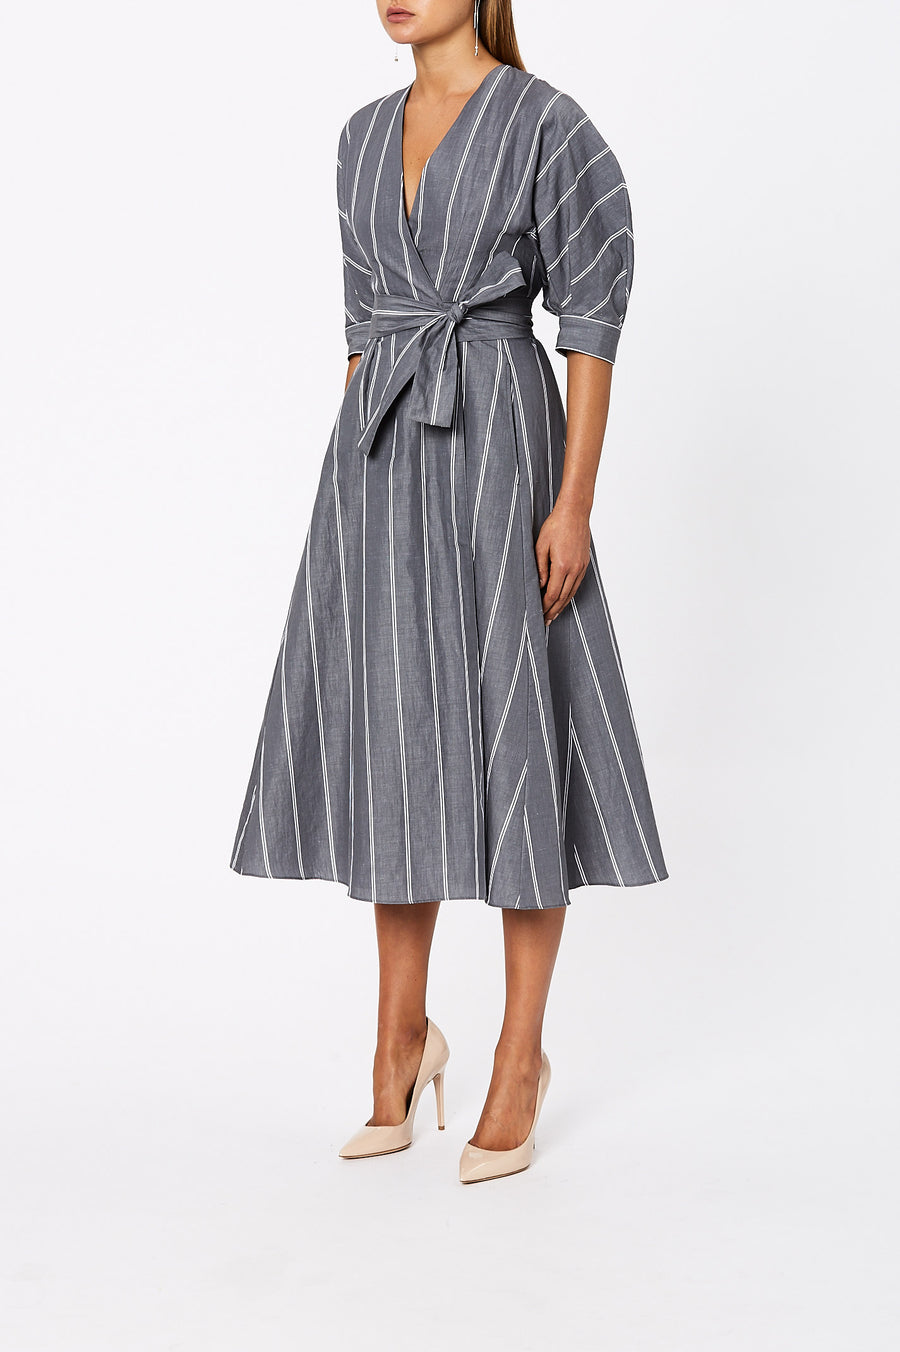 The Stripe Wrap Dress is flattering for all body types